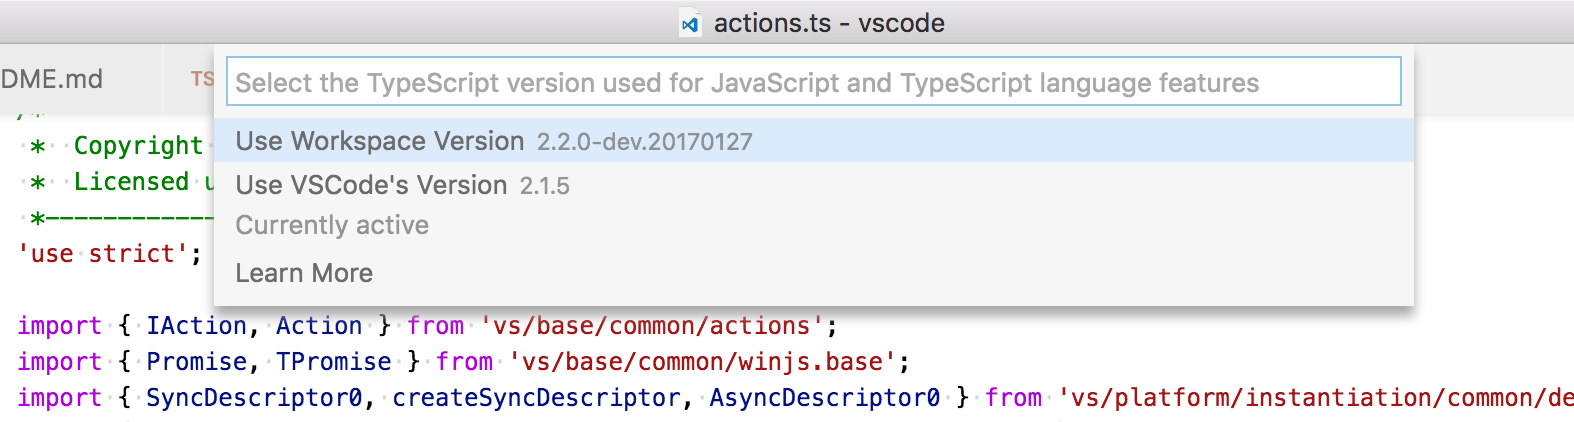 TypeScript version selector